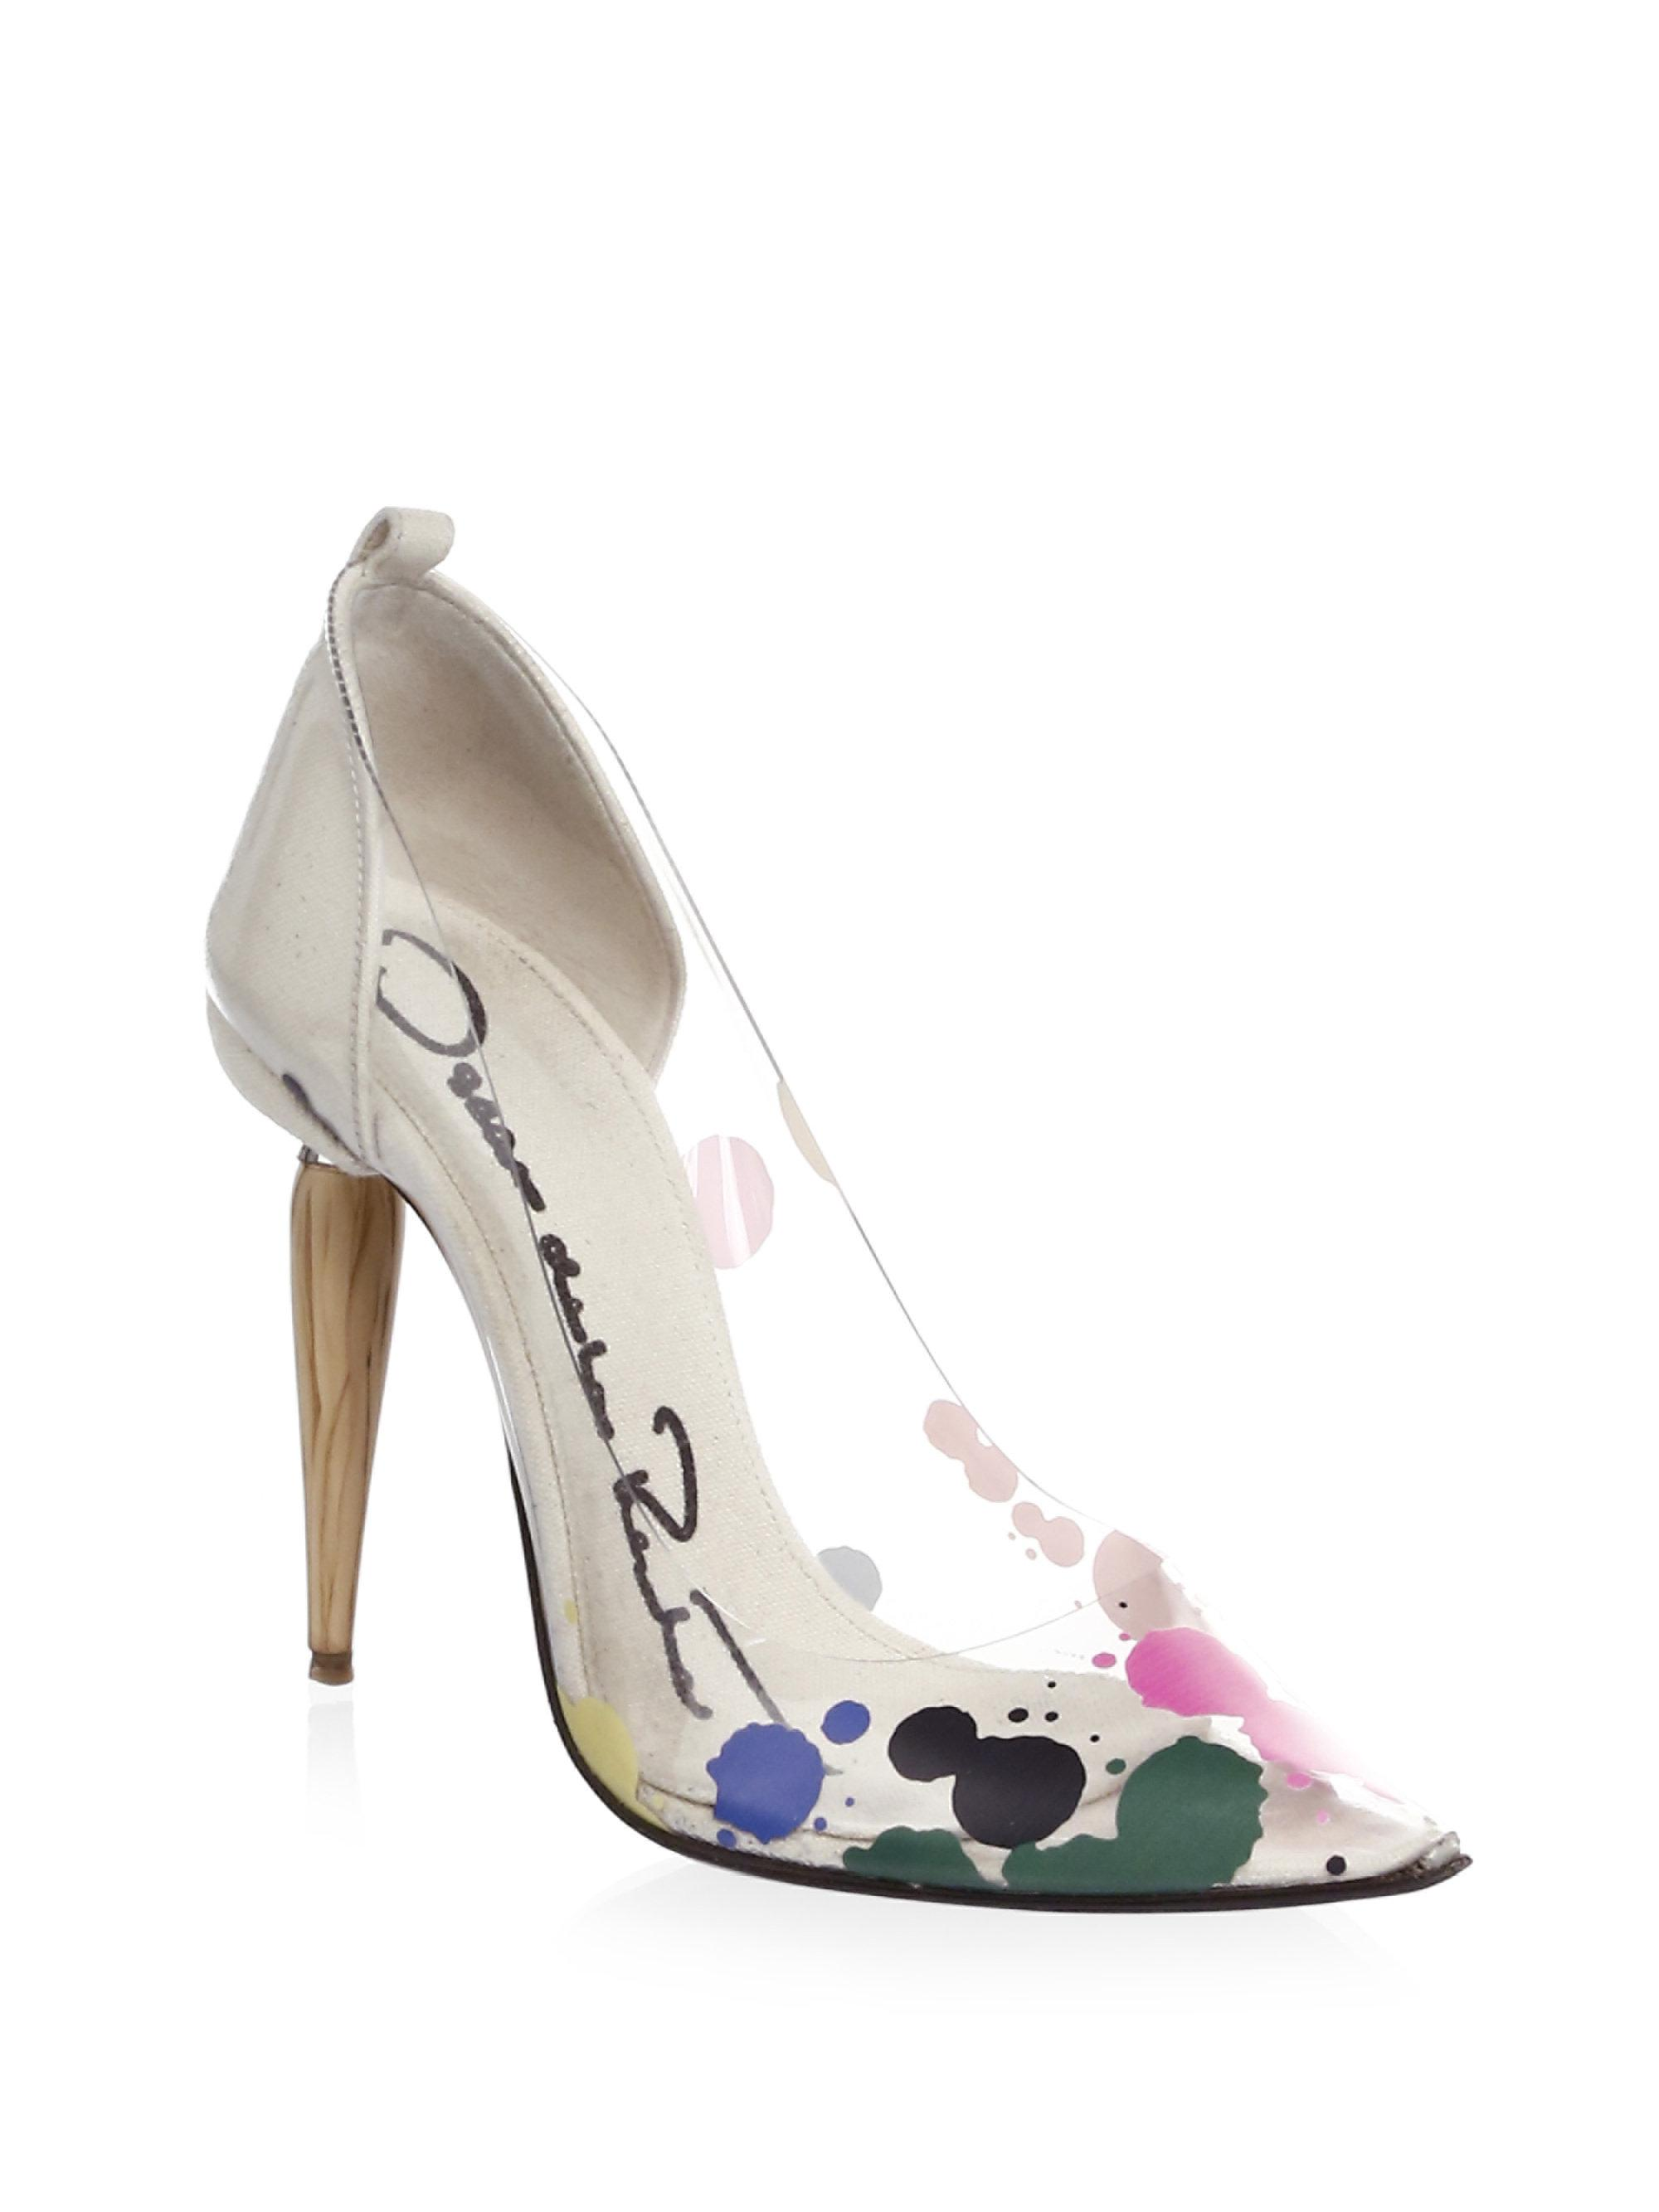 c94145b4de21 Oscar de la Renta - Multicolor Point-toe Pumps - Lyst